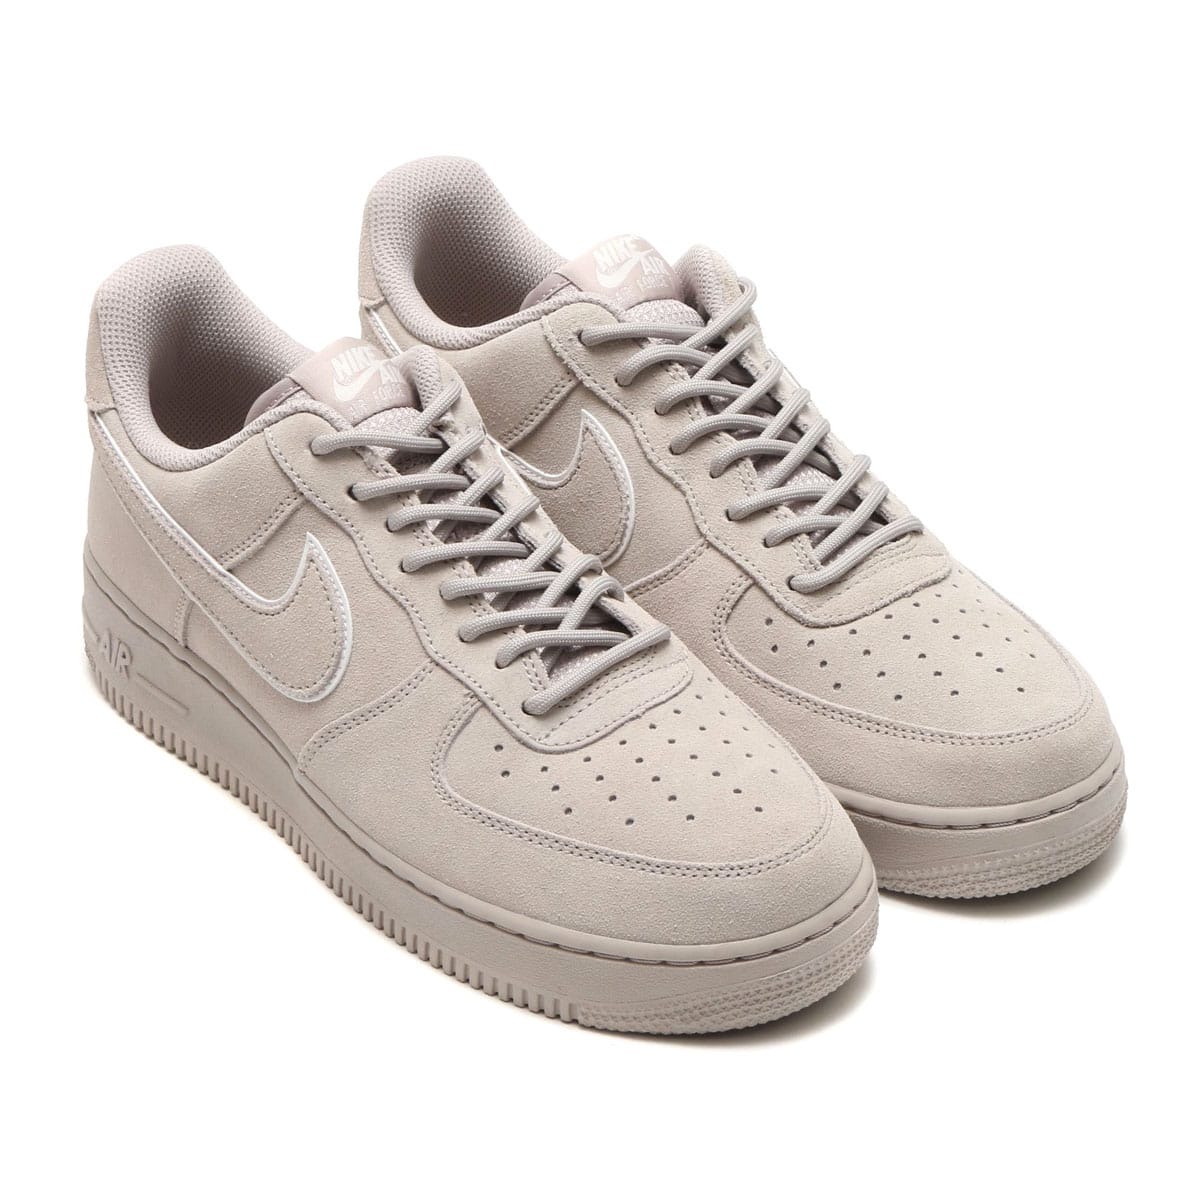 bdb8842d16b3e NIKE AIR FORCE 1 '07 LV8 SUEDE MOON PARTICLE/MOON PARTICLE-SEPIA  STONE_photo_large